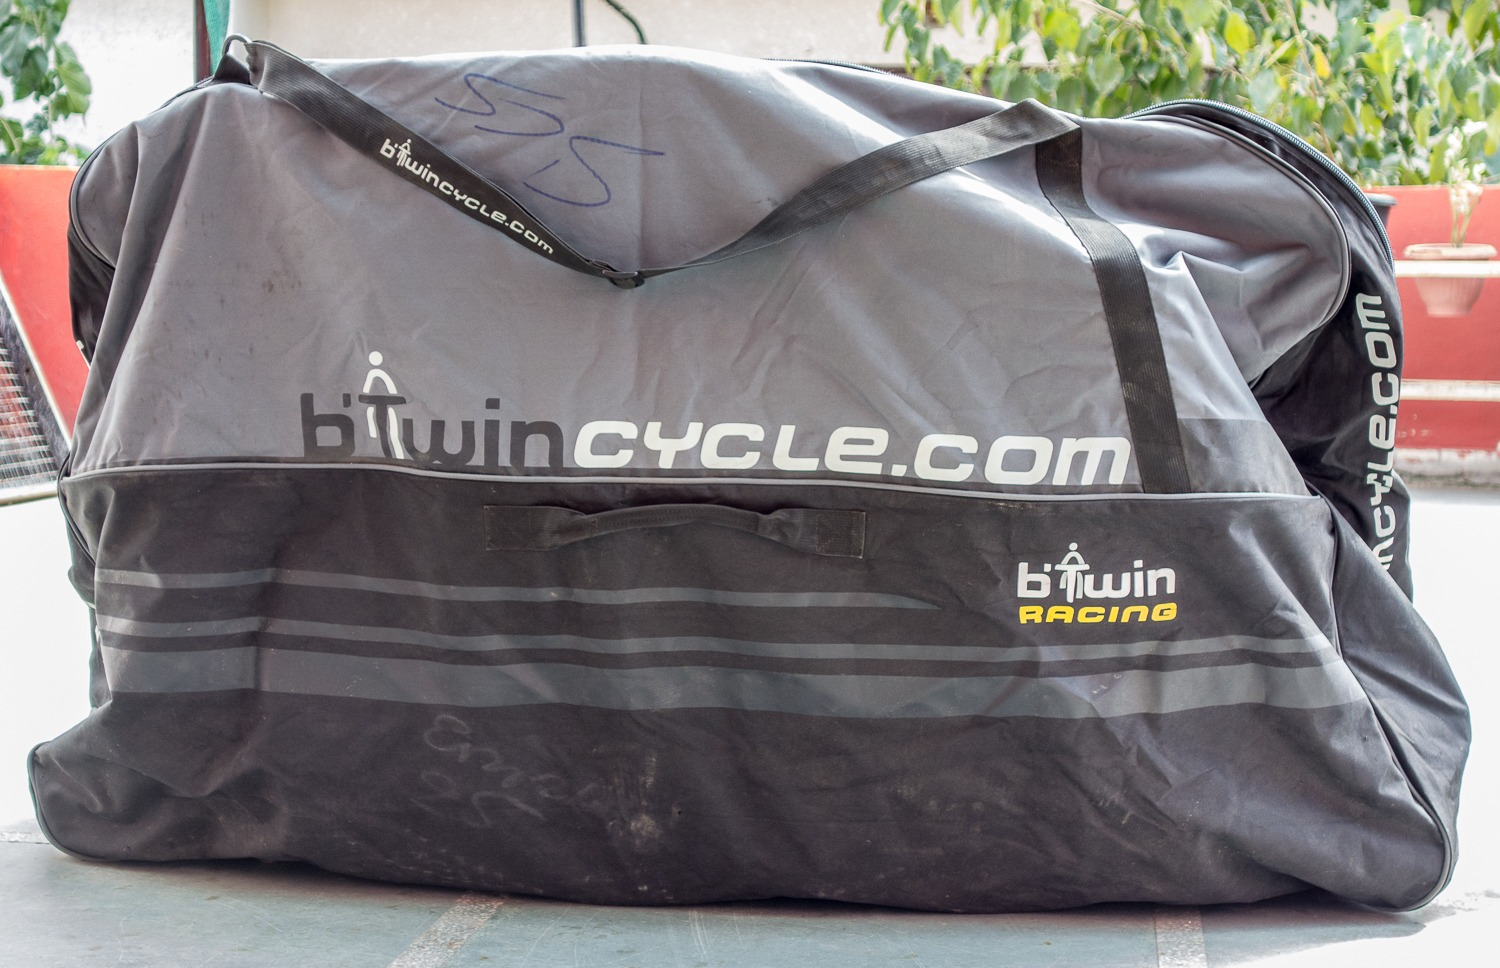 B'Twin Bike Transport Bag Review